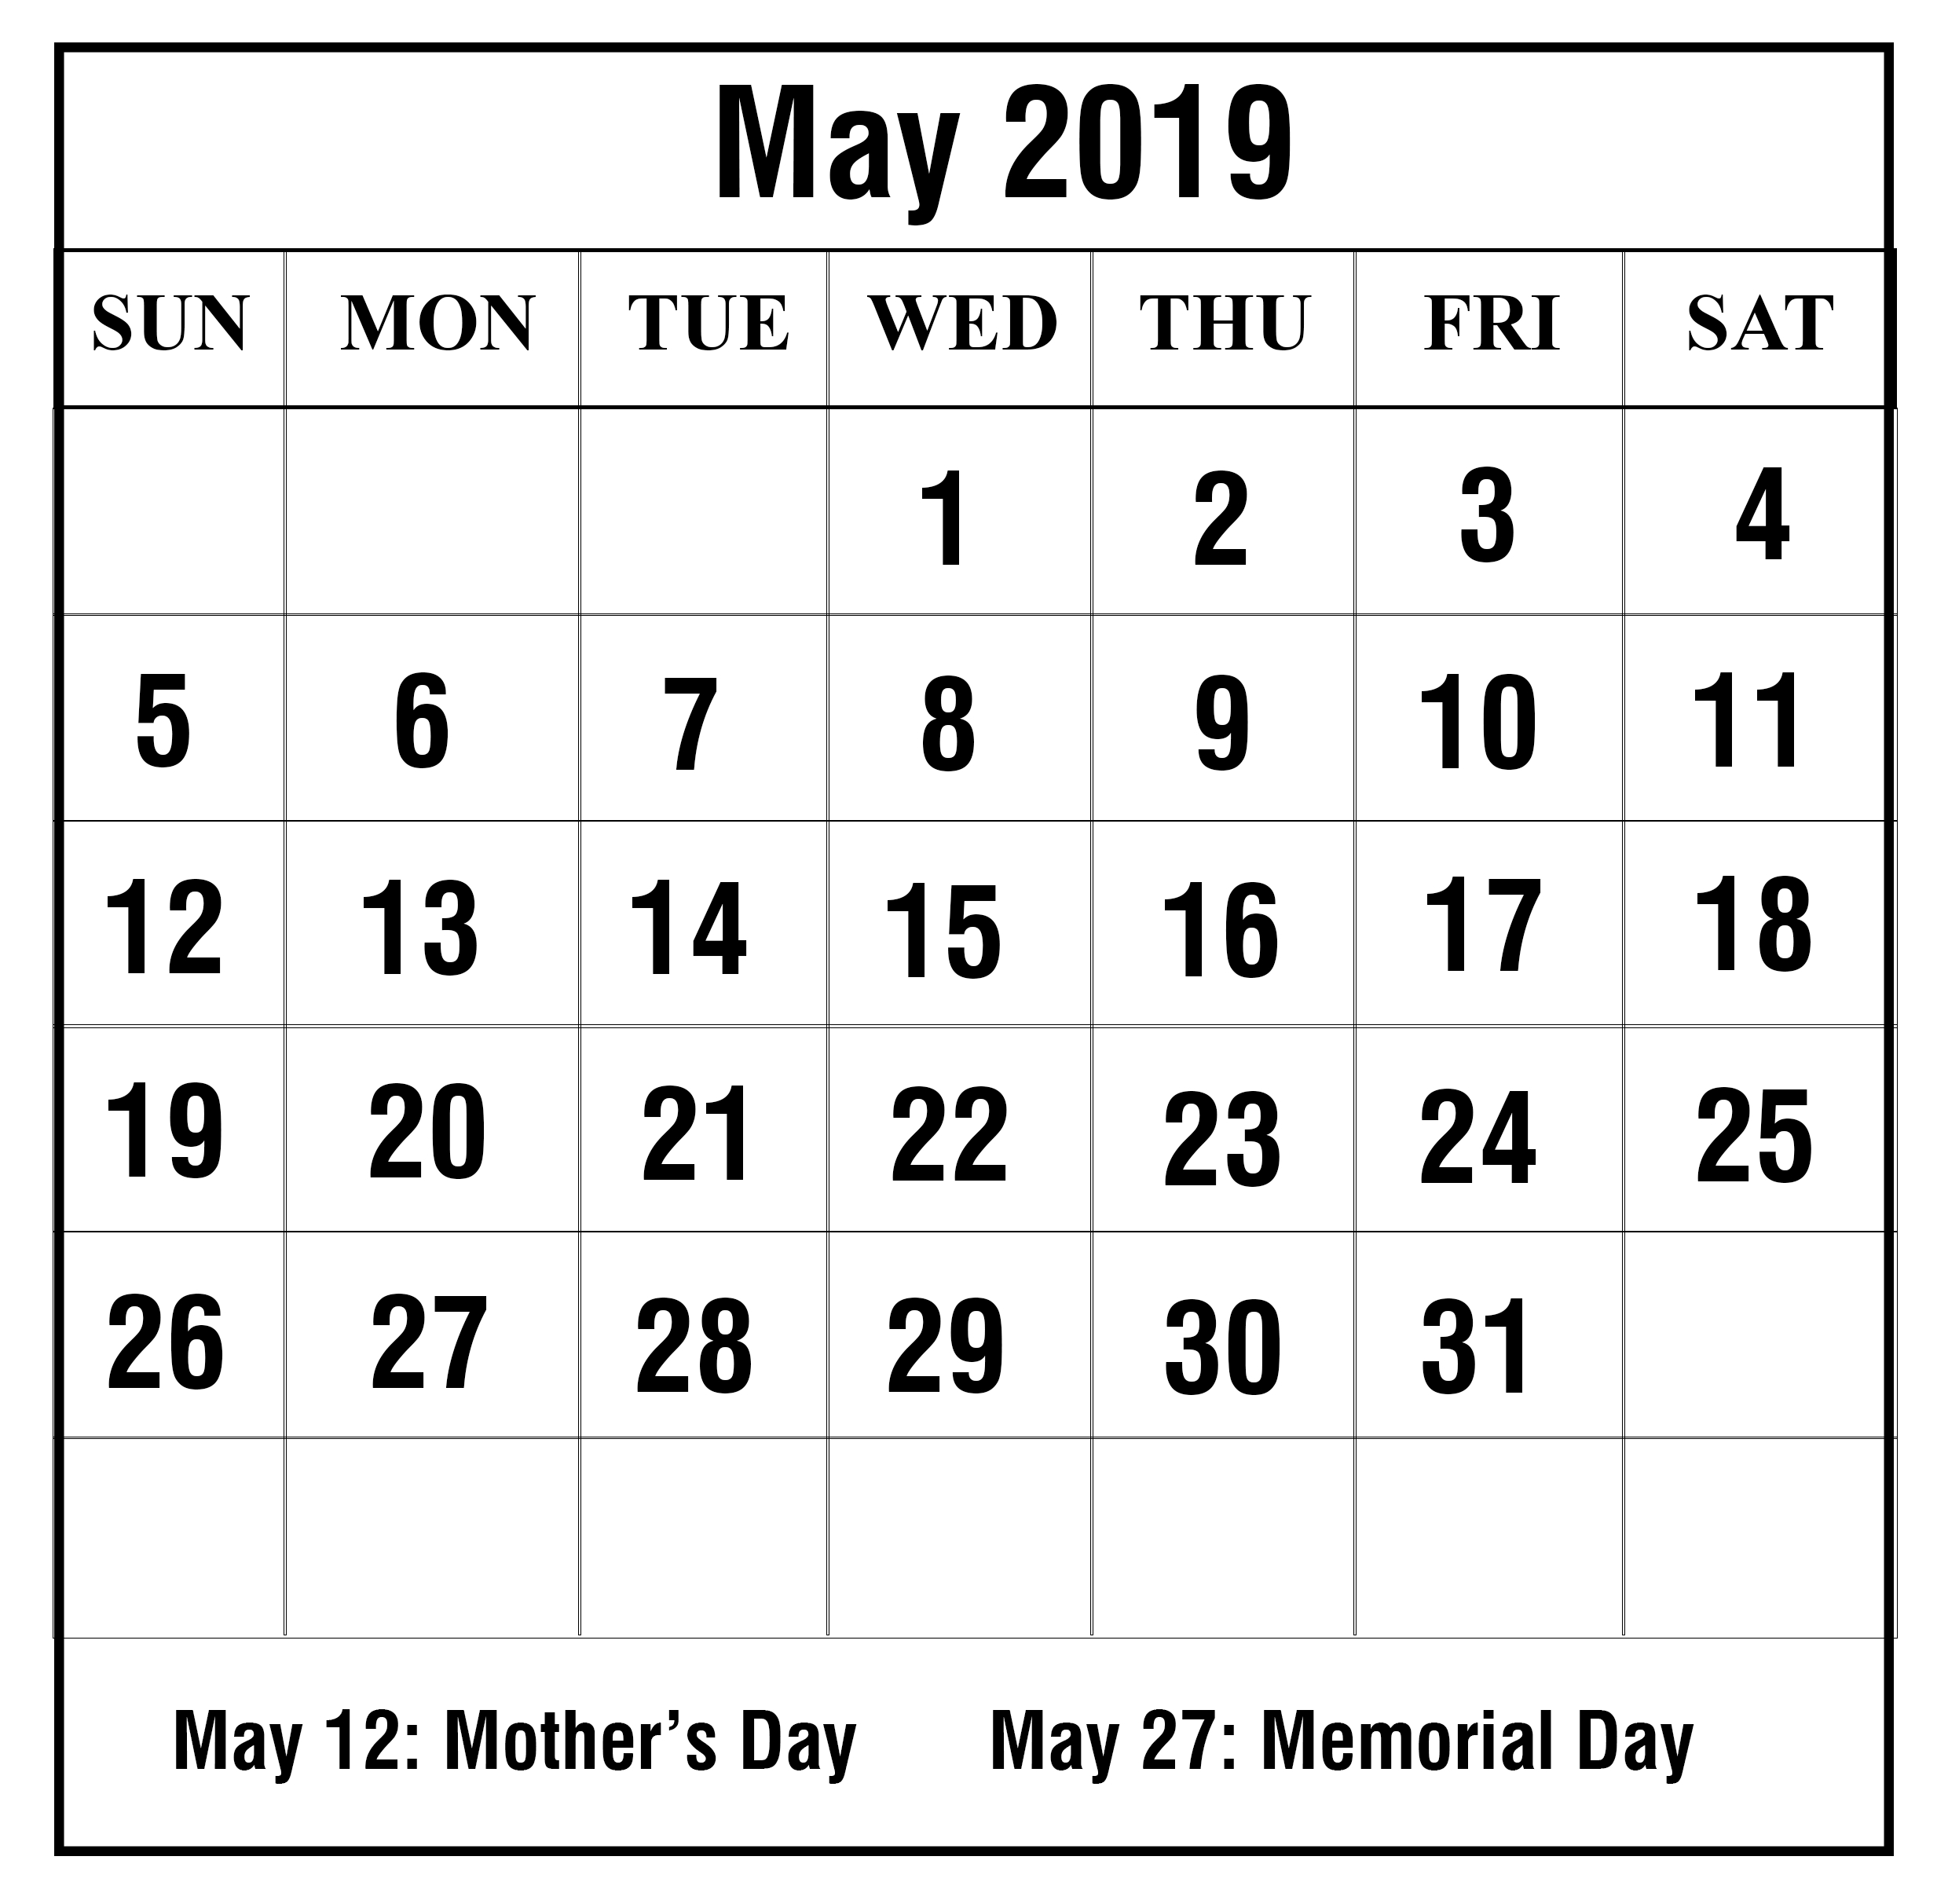 Free May 2019 Printable Calendar In Pdf, Word, Excel | Printable May Calendar 2019 Memorial Day